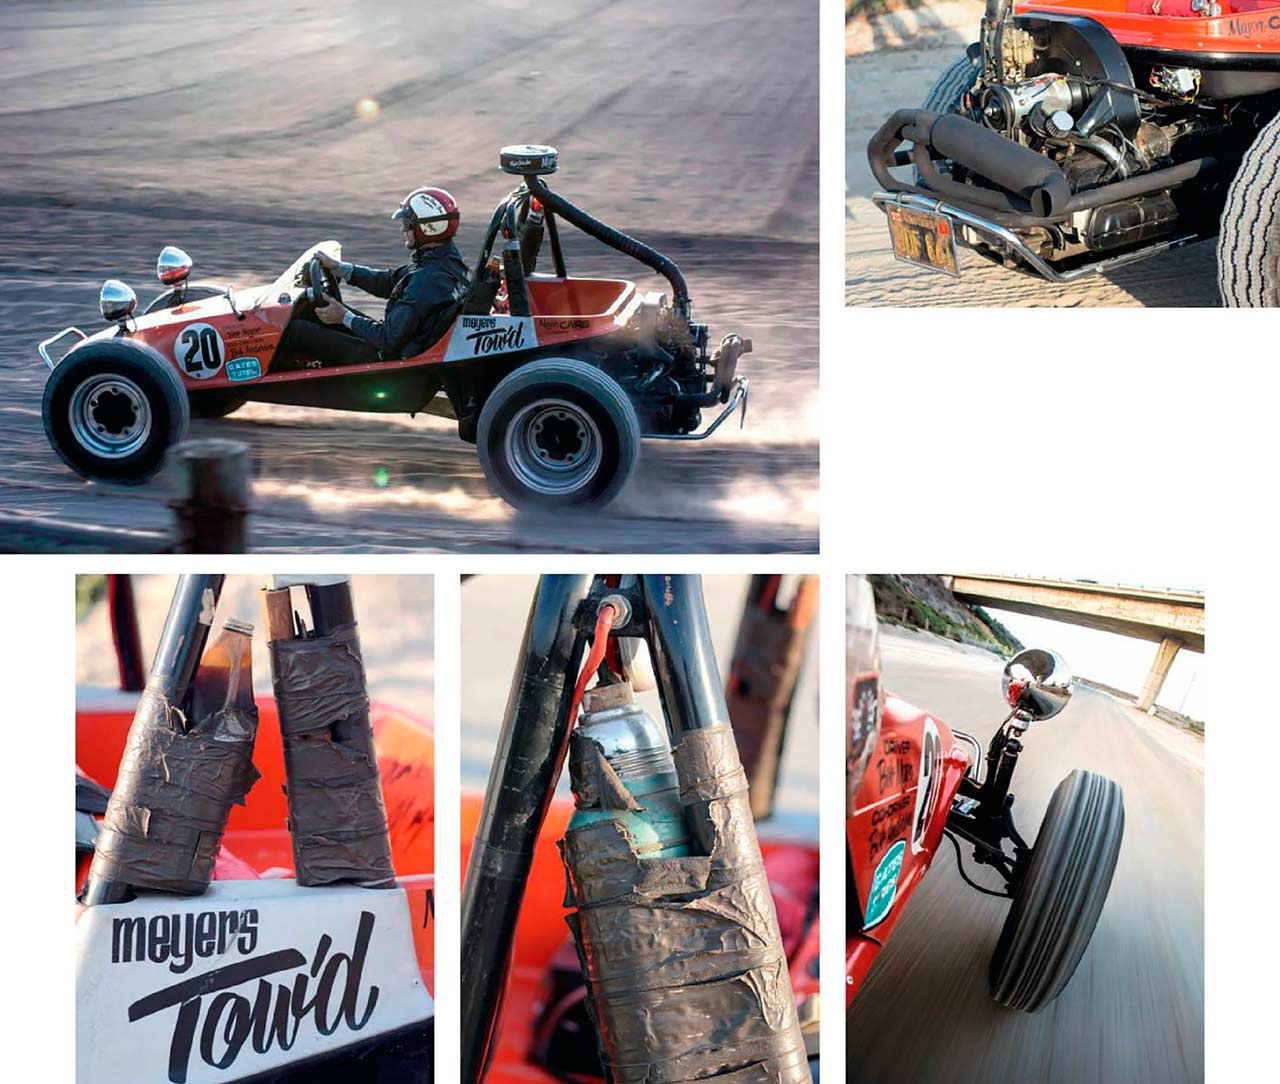 Meyers' Baja adventure 950 miles in a buggy! - Drive